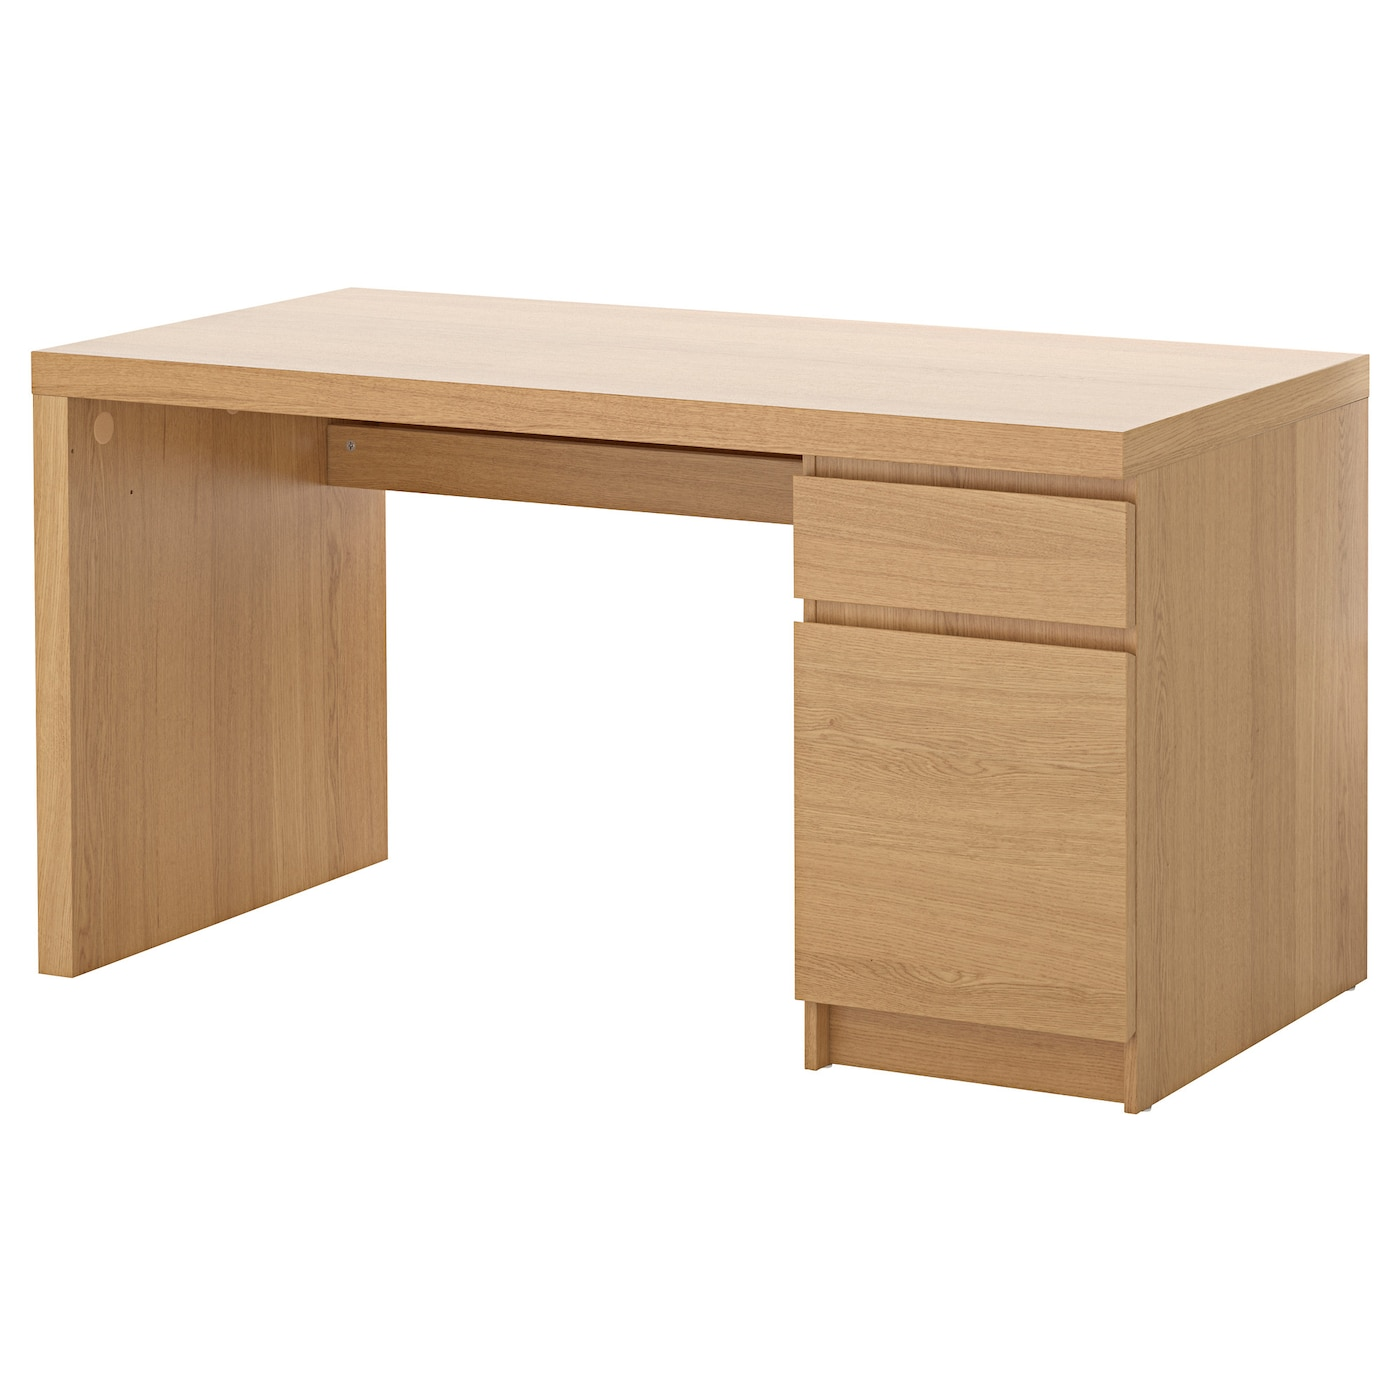 Malm desk oak veneer 140x65 cm ikea for Laquer un meuble en mdf